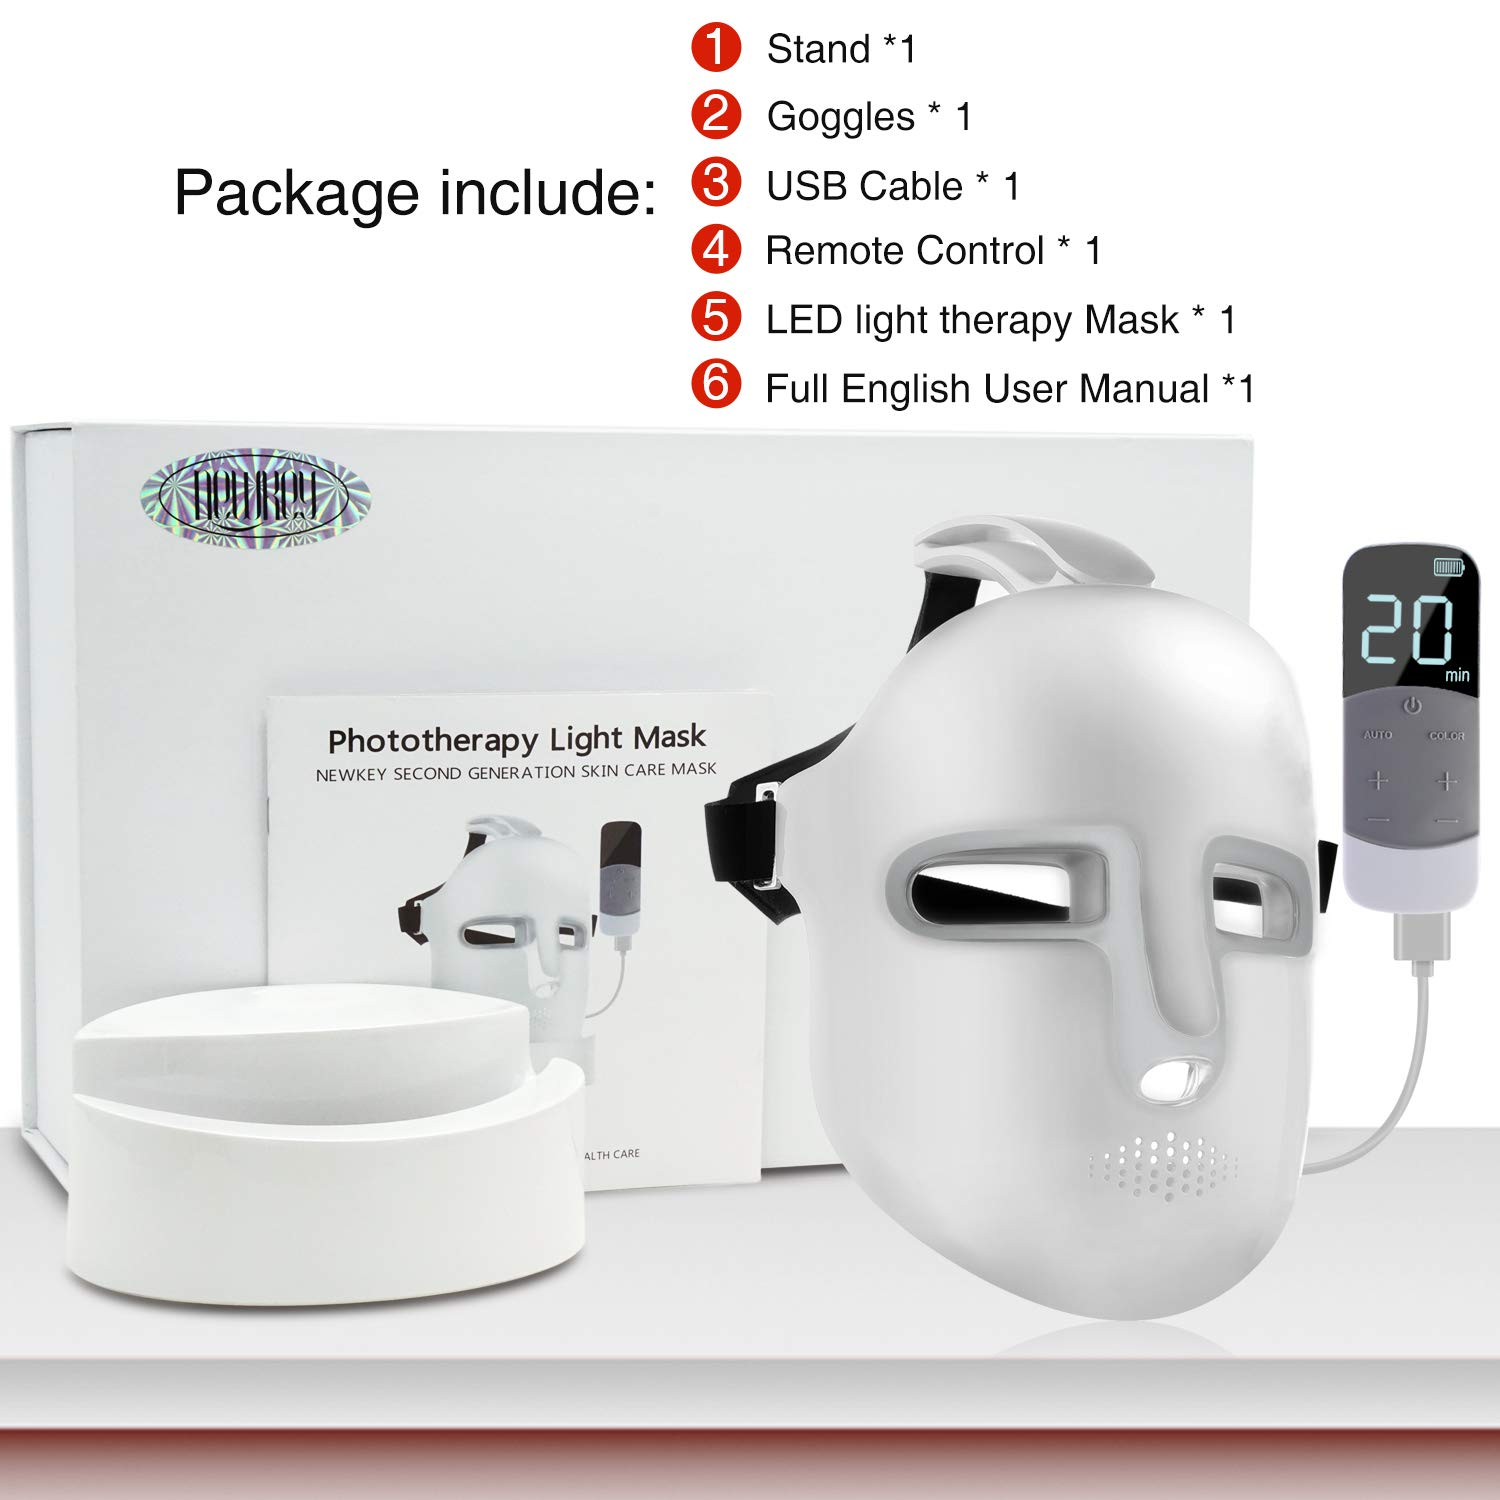 NEWKEY Led Light Therapy Facial Mask - Uses Newest Red/Blue/Yellow Light Therapy For Skin Rejuvenation|Whitening|Anti Aging|Smoothening Wrinkles|Weakening Scarring|Lighter Weight and More Comfortable by NEWKEY (Image #8)